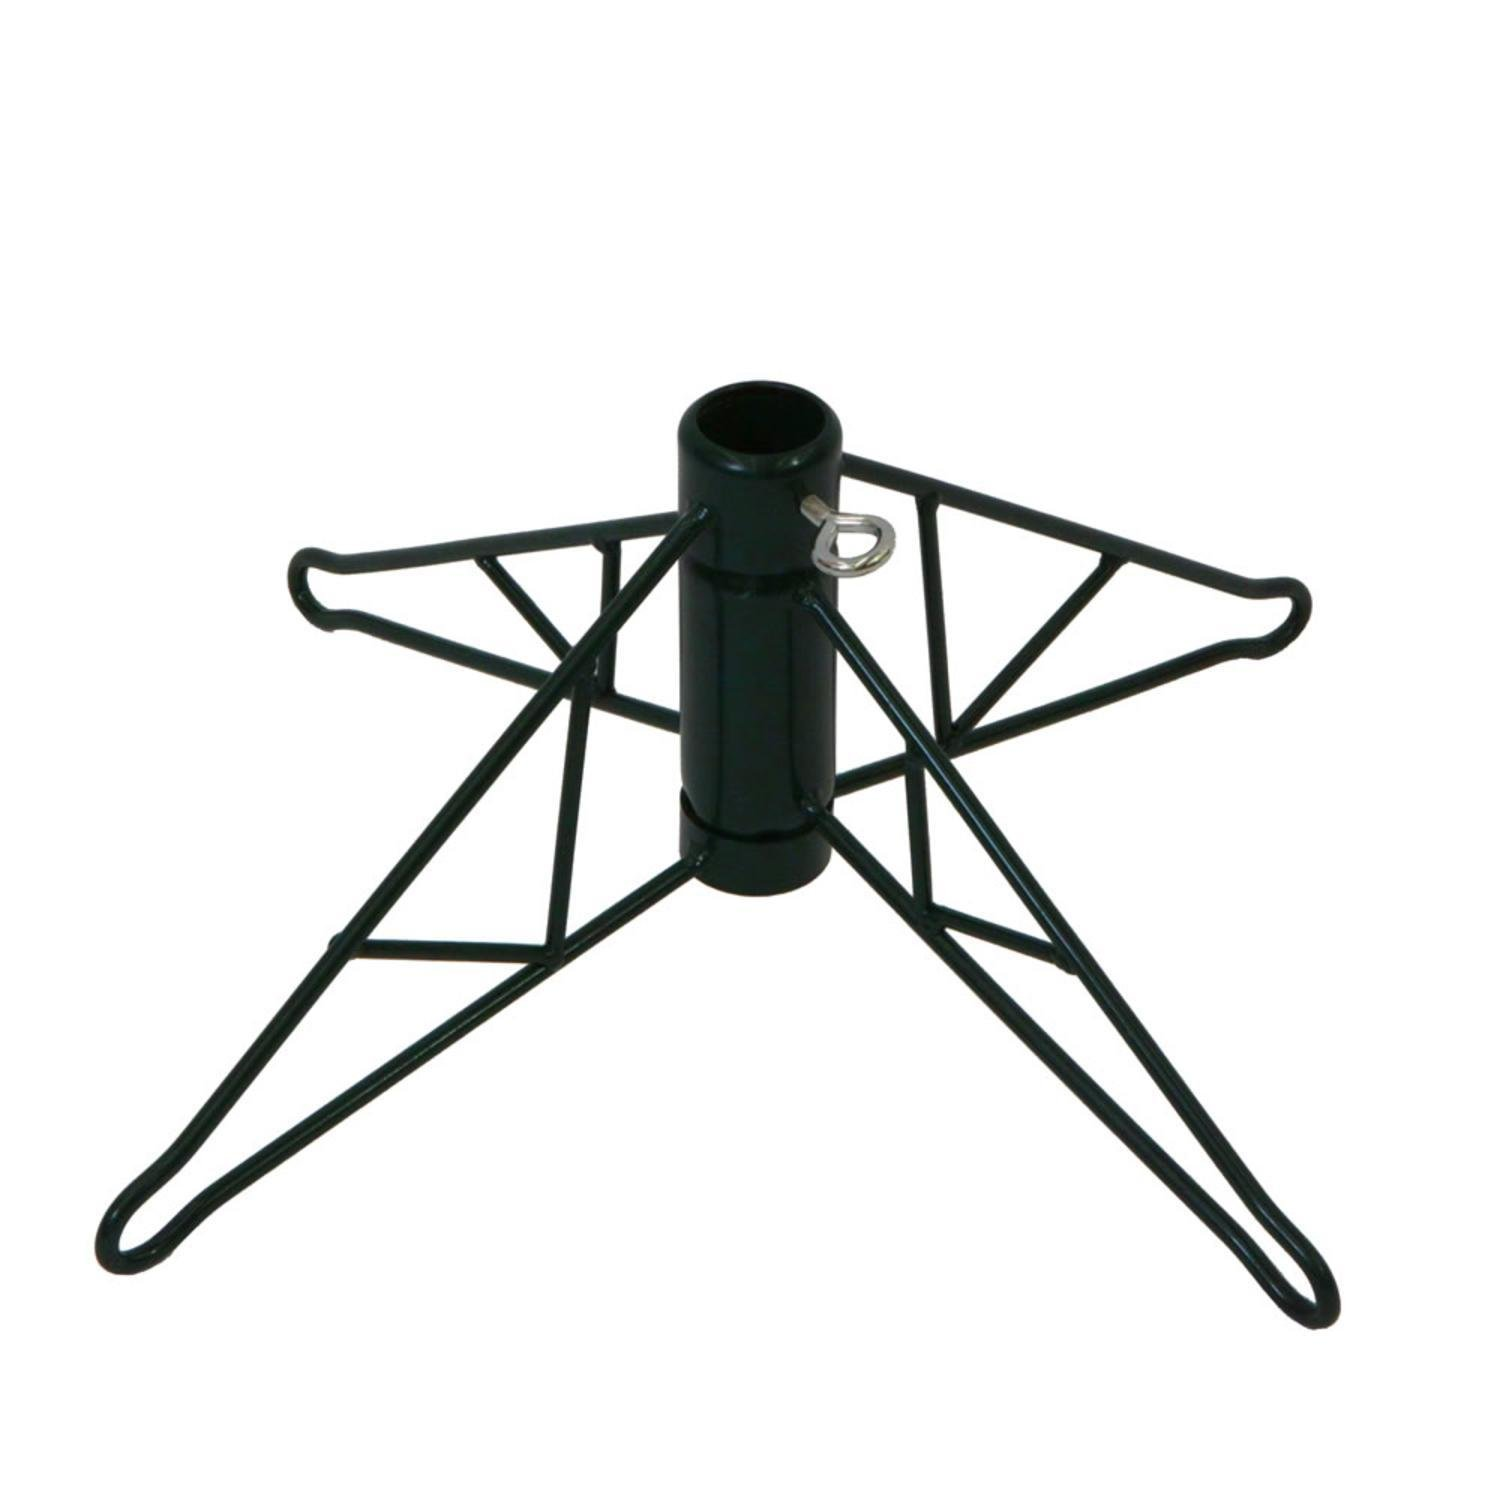 Northlight Green Metal Christmas Tree Stand For 10' - 11.5' Artificial Trees